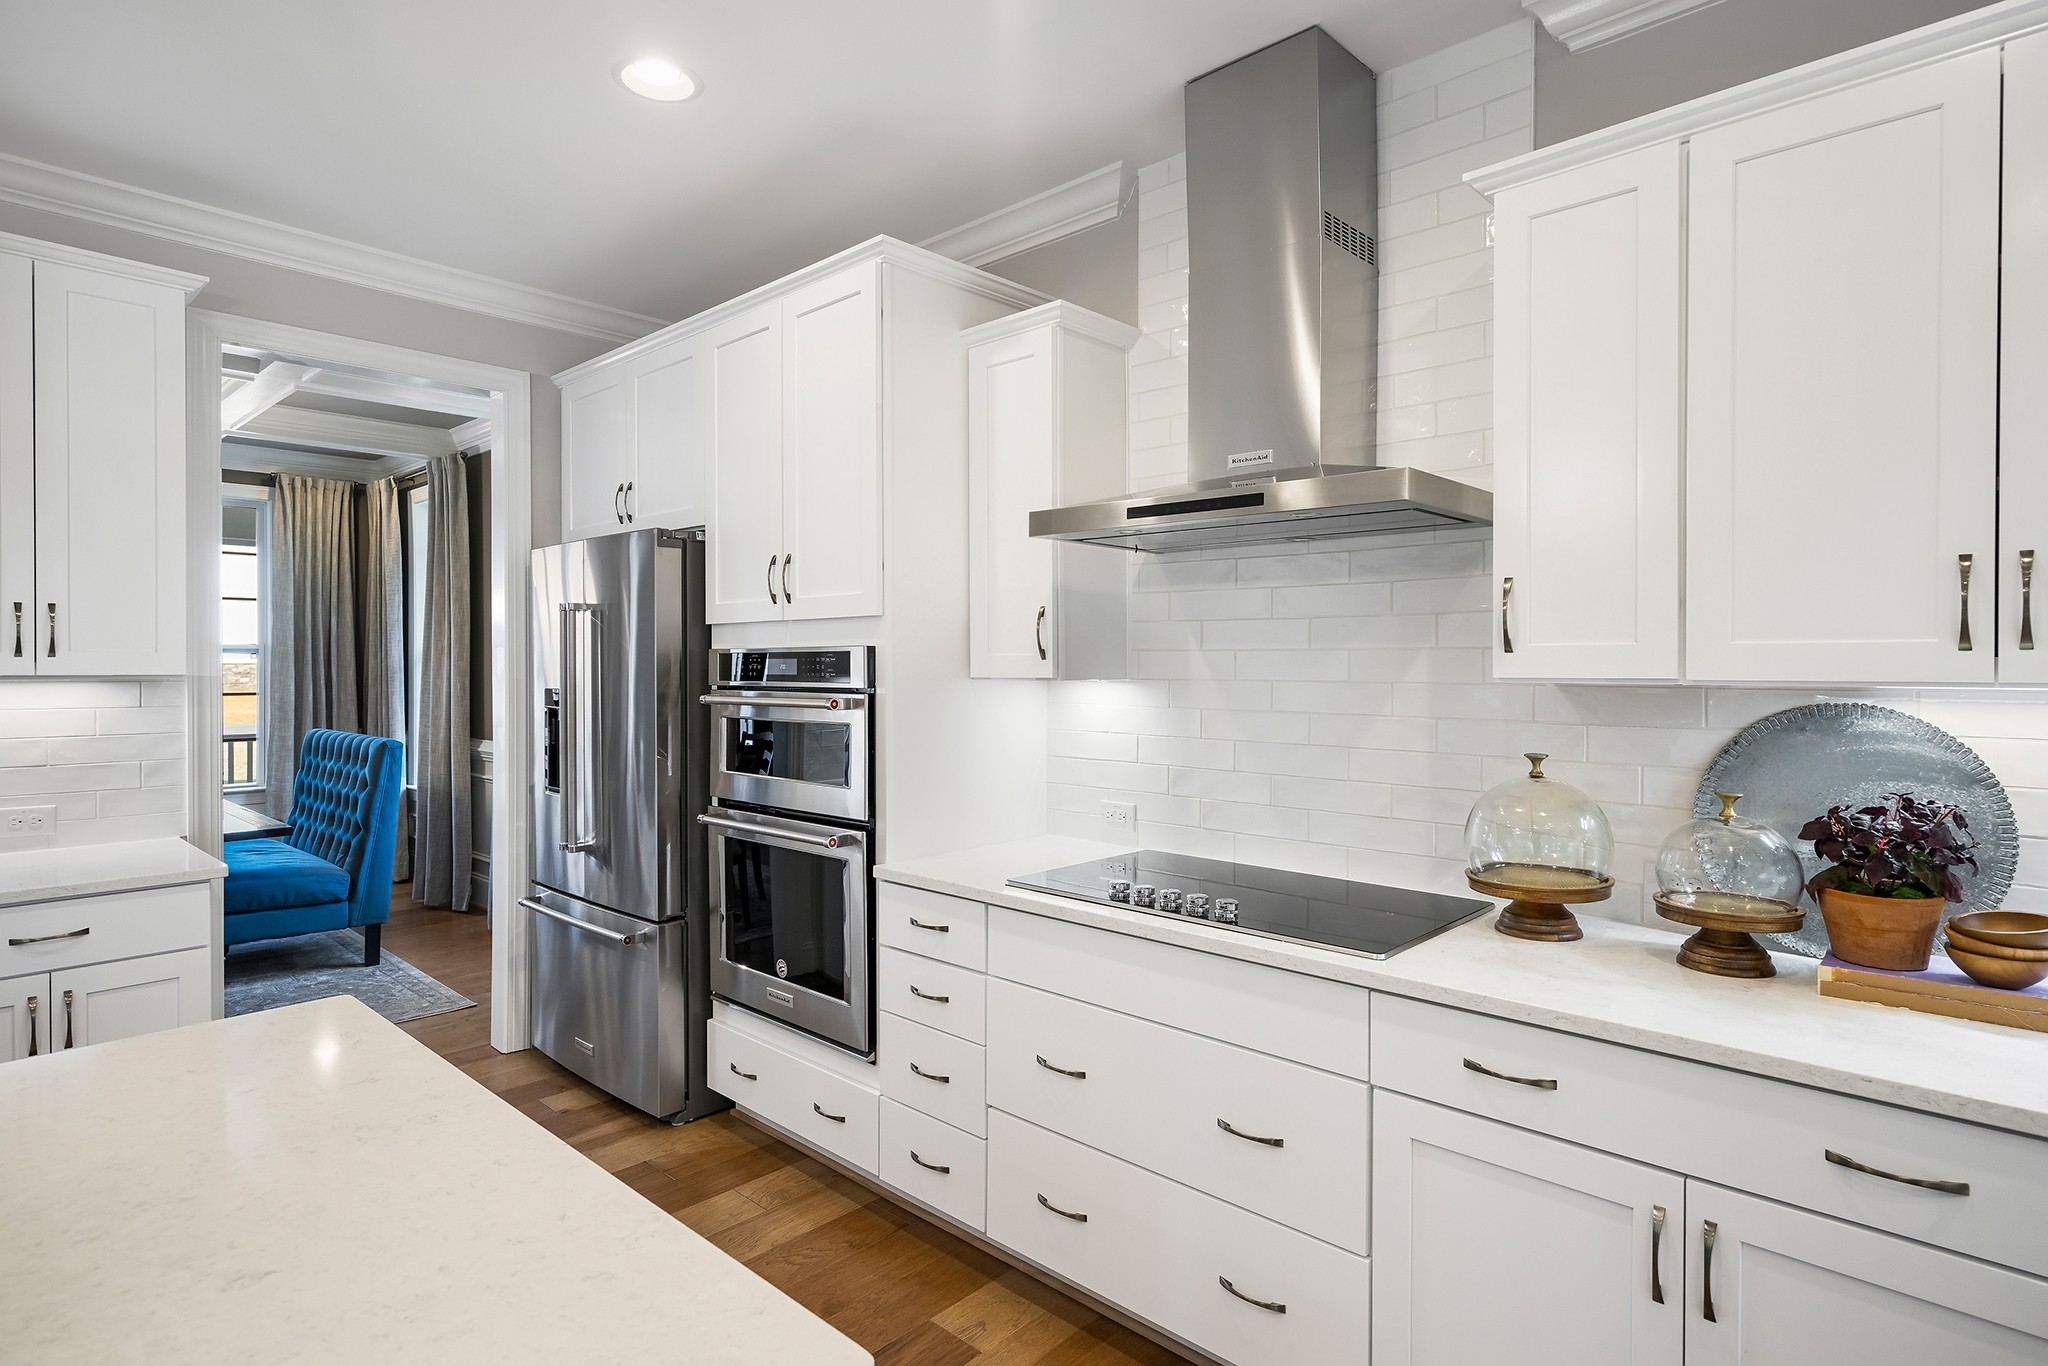 Ballentine Place, The Edenton Model, Royal Oaks a Division of Mattamy Homes, Spacious Open Kitchen